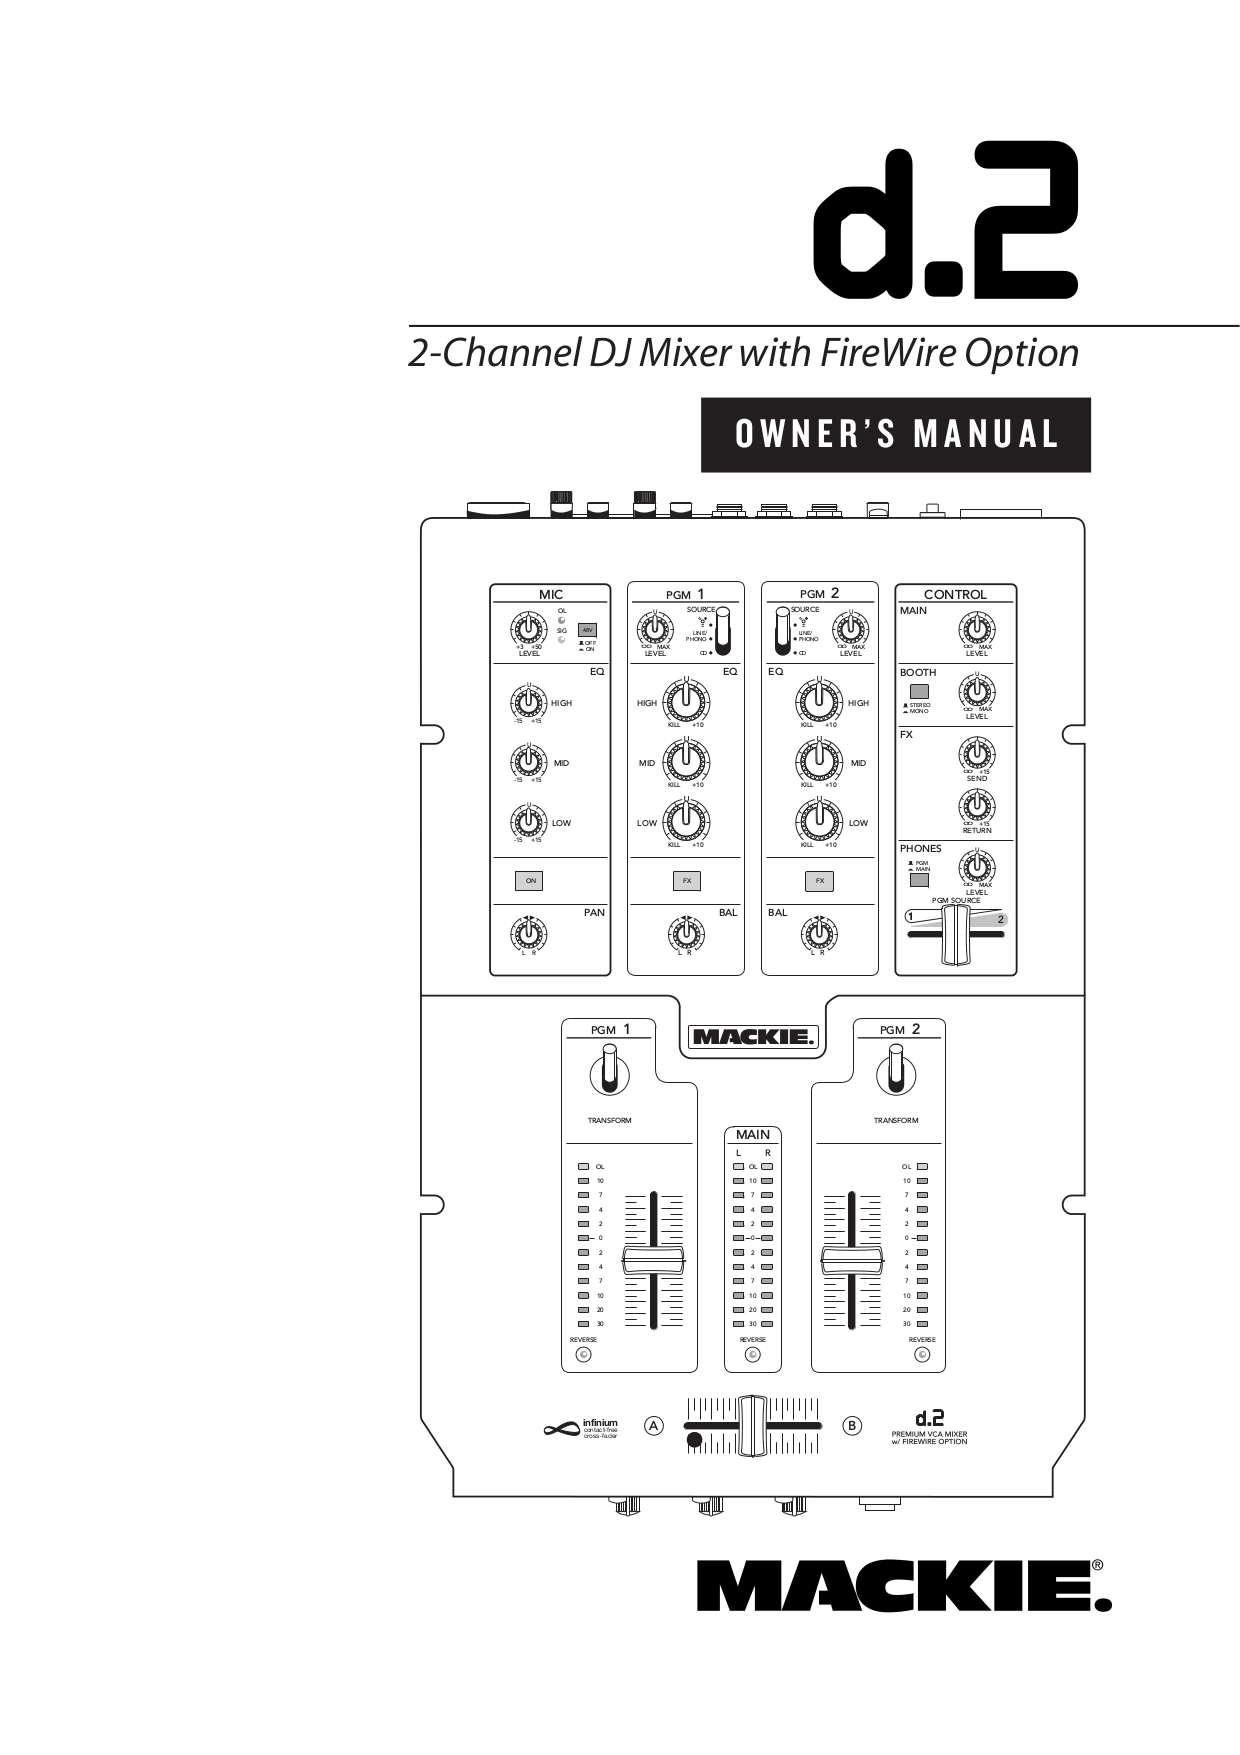 Download free pdf for Mackie D.2 DJ mixer Other manual